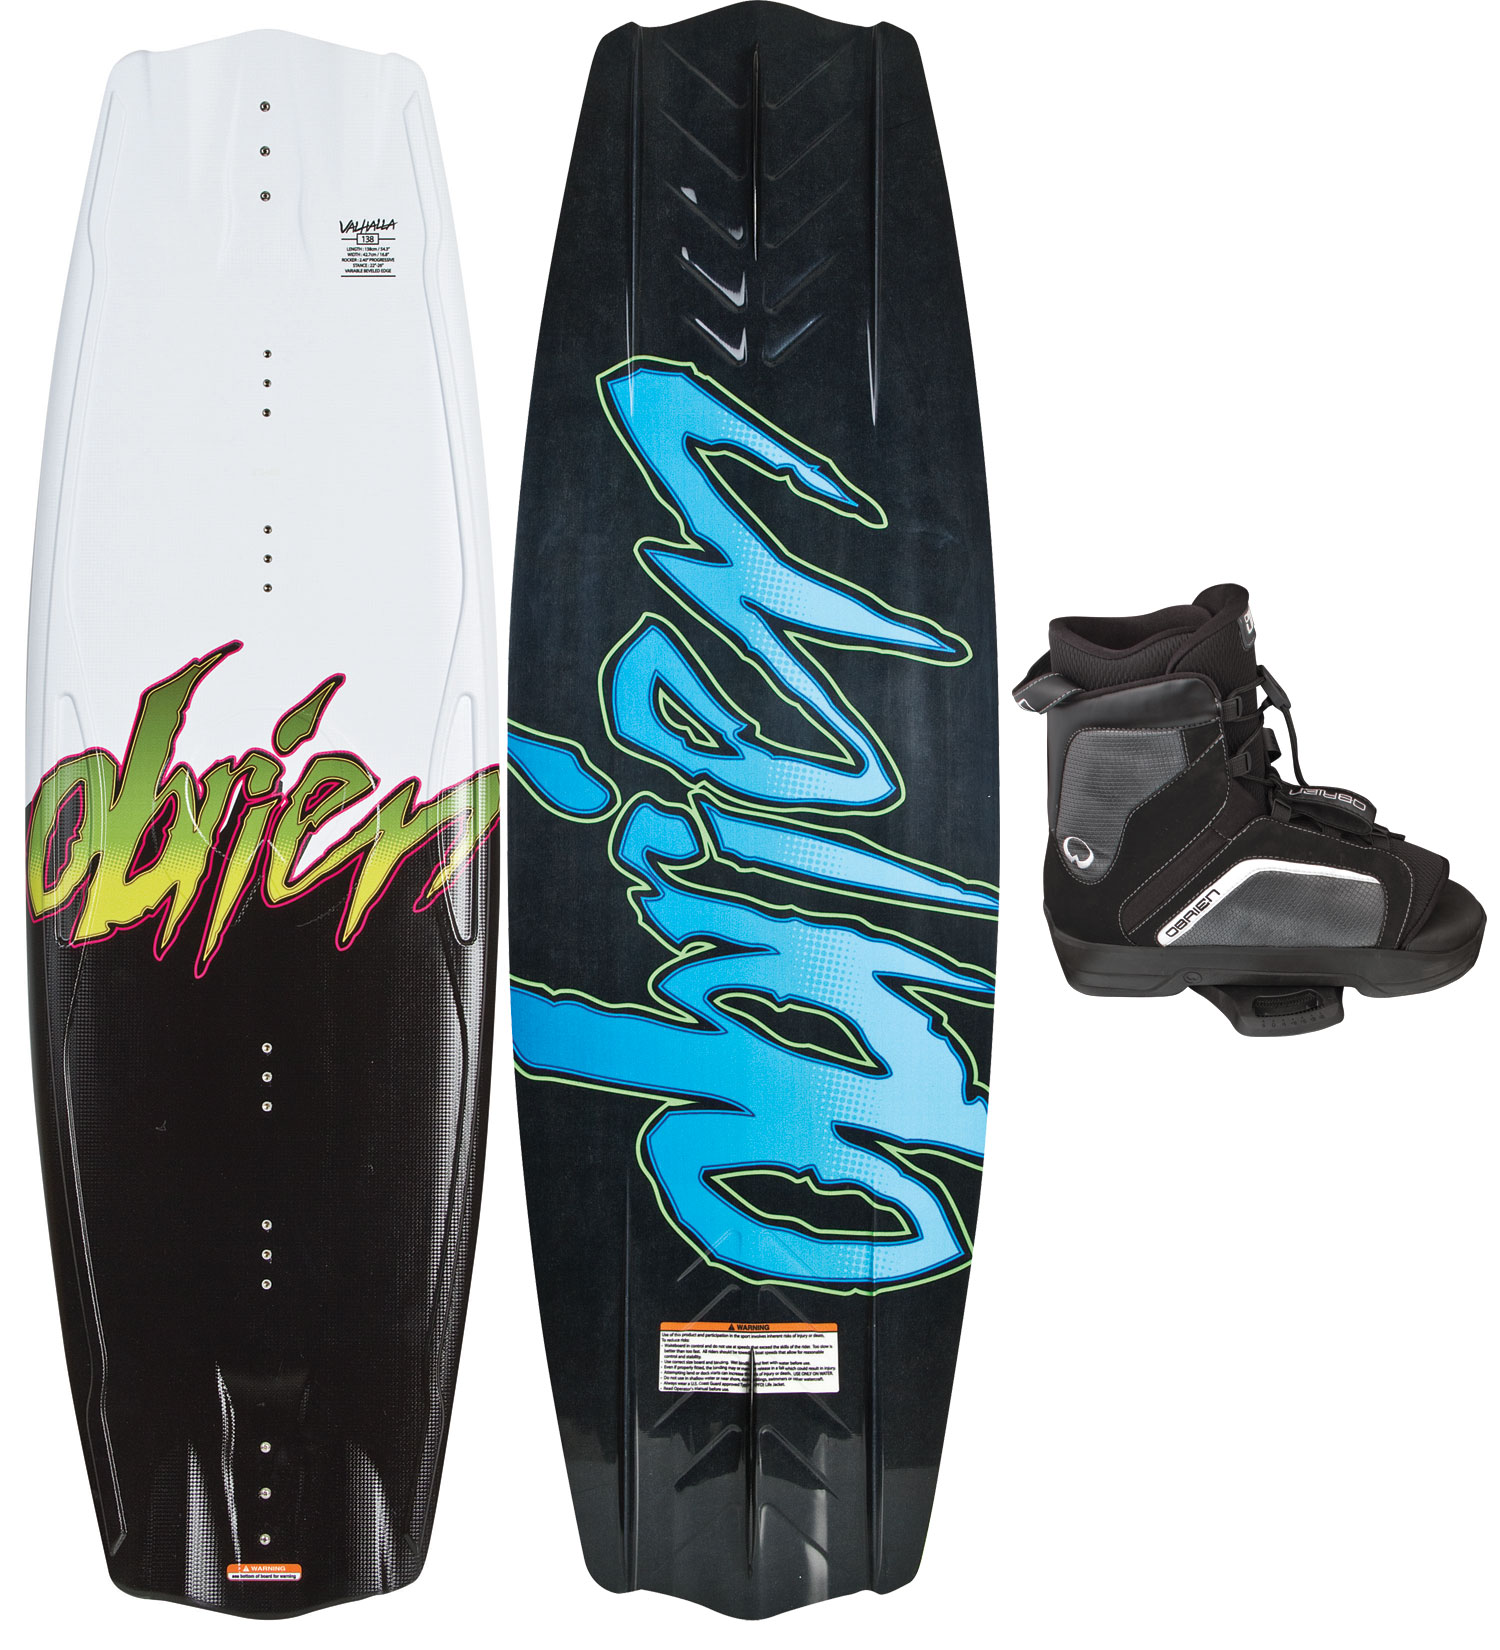 "Wake The O''brien Valhalla wakeboards feature a full rail through the center of the board that tapers towards the tips, along with a very ""floaty"" skate inspired feel and the ability to hook up and hit the wake with speed when needed. A very light deck and thin tip and tail give this deck a low-mass swing weight. A highly favored board by O''Brien''s team riders and arguably the best value in all of wakeboarding.Key Features of the O''Brien Valhalla Wakeboard: Length (cm): 138 Mid Width (cm): 42.7 Rocker (cm): 2.40"" ProgressiveKey Features of the O''Brien Link Bindings: Open Toe Design for more fit flexibility Free-Flex tongue opens wide for easy entry Size specific construction Strobel laste liner CMEVA outsole Comfort footbed Fixed Off-Axis plate - $303.95"